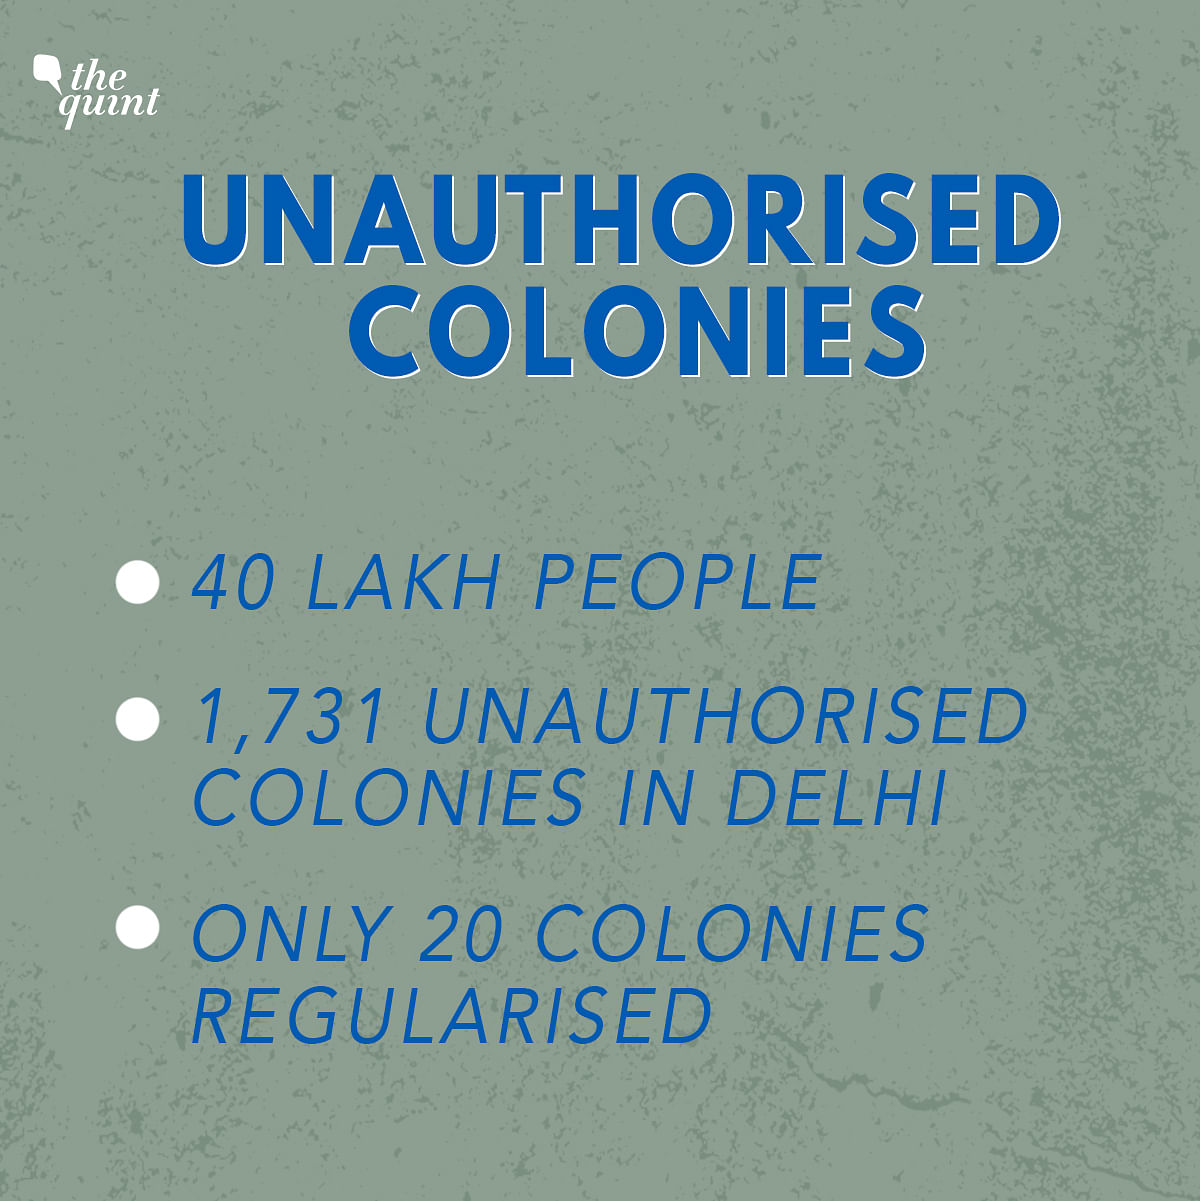 Unauthorised colonies are a major poll issue in Delhi.